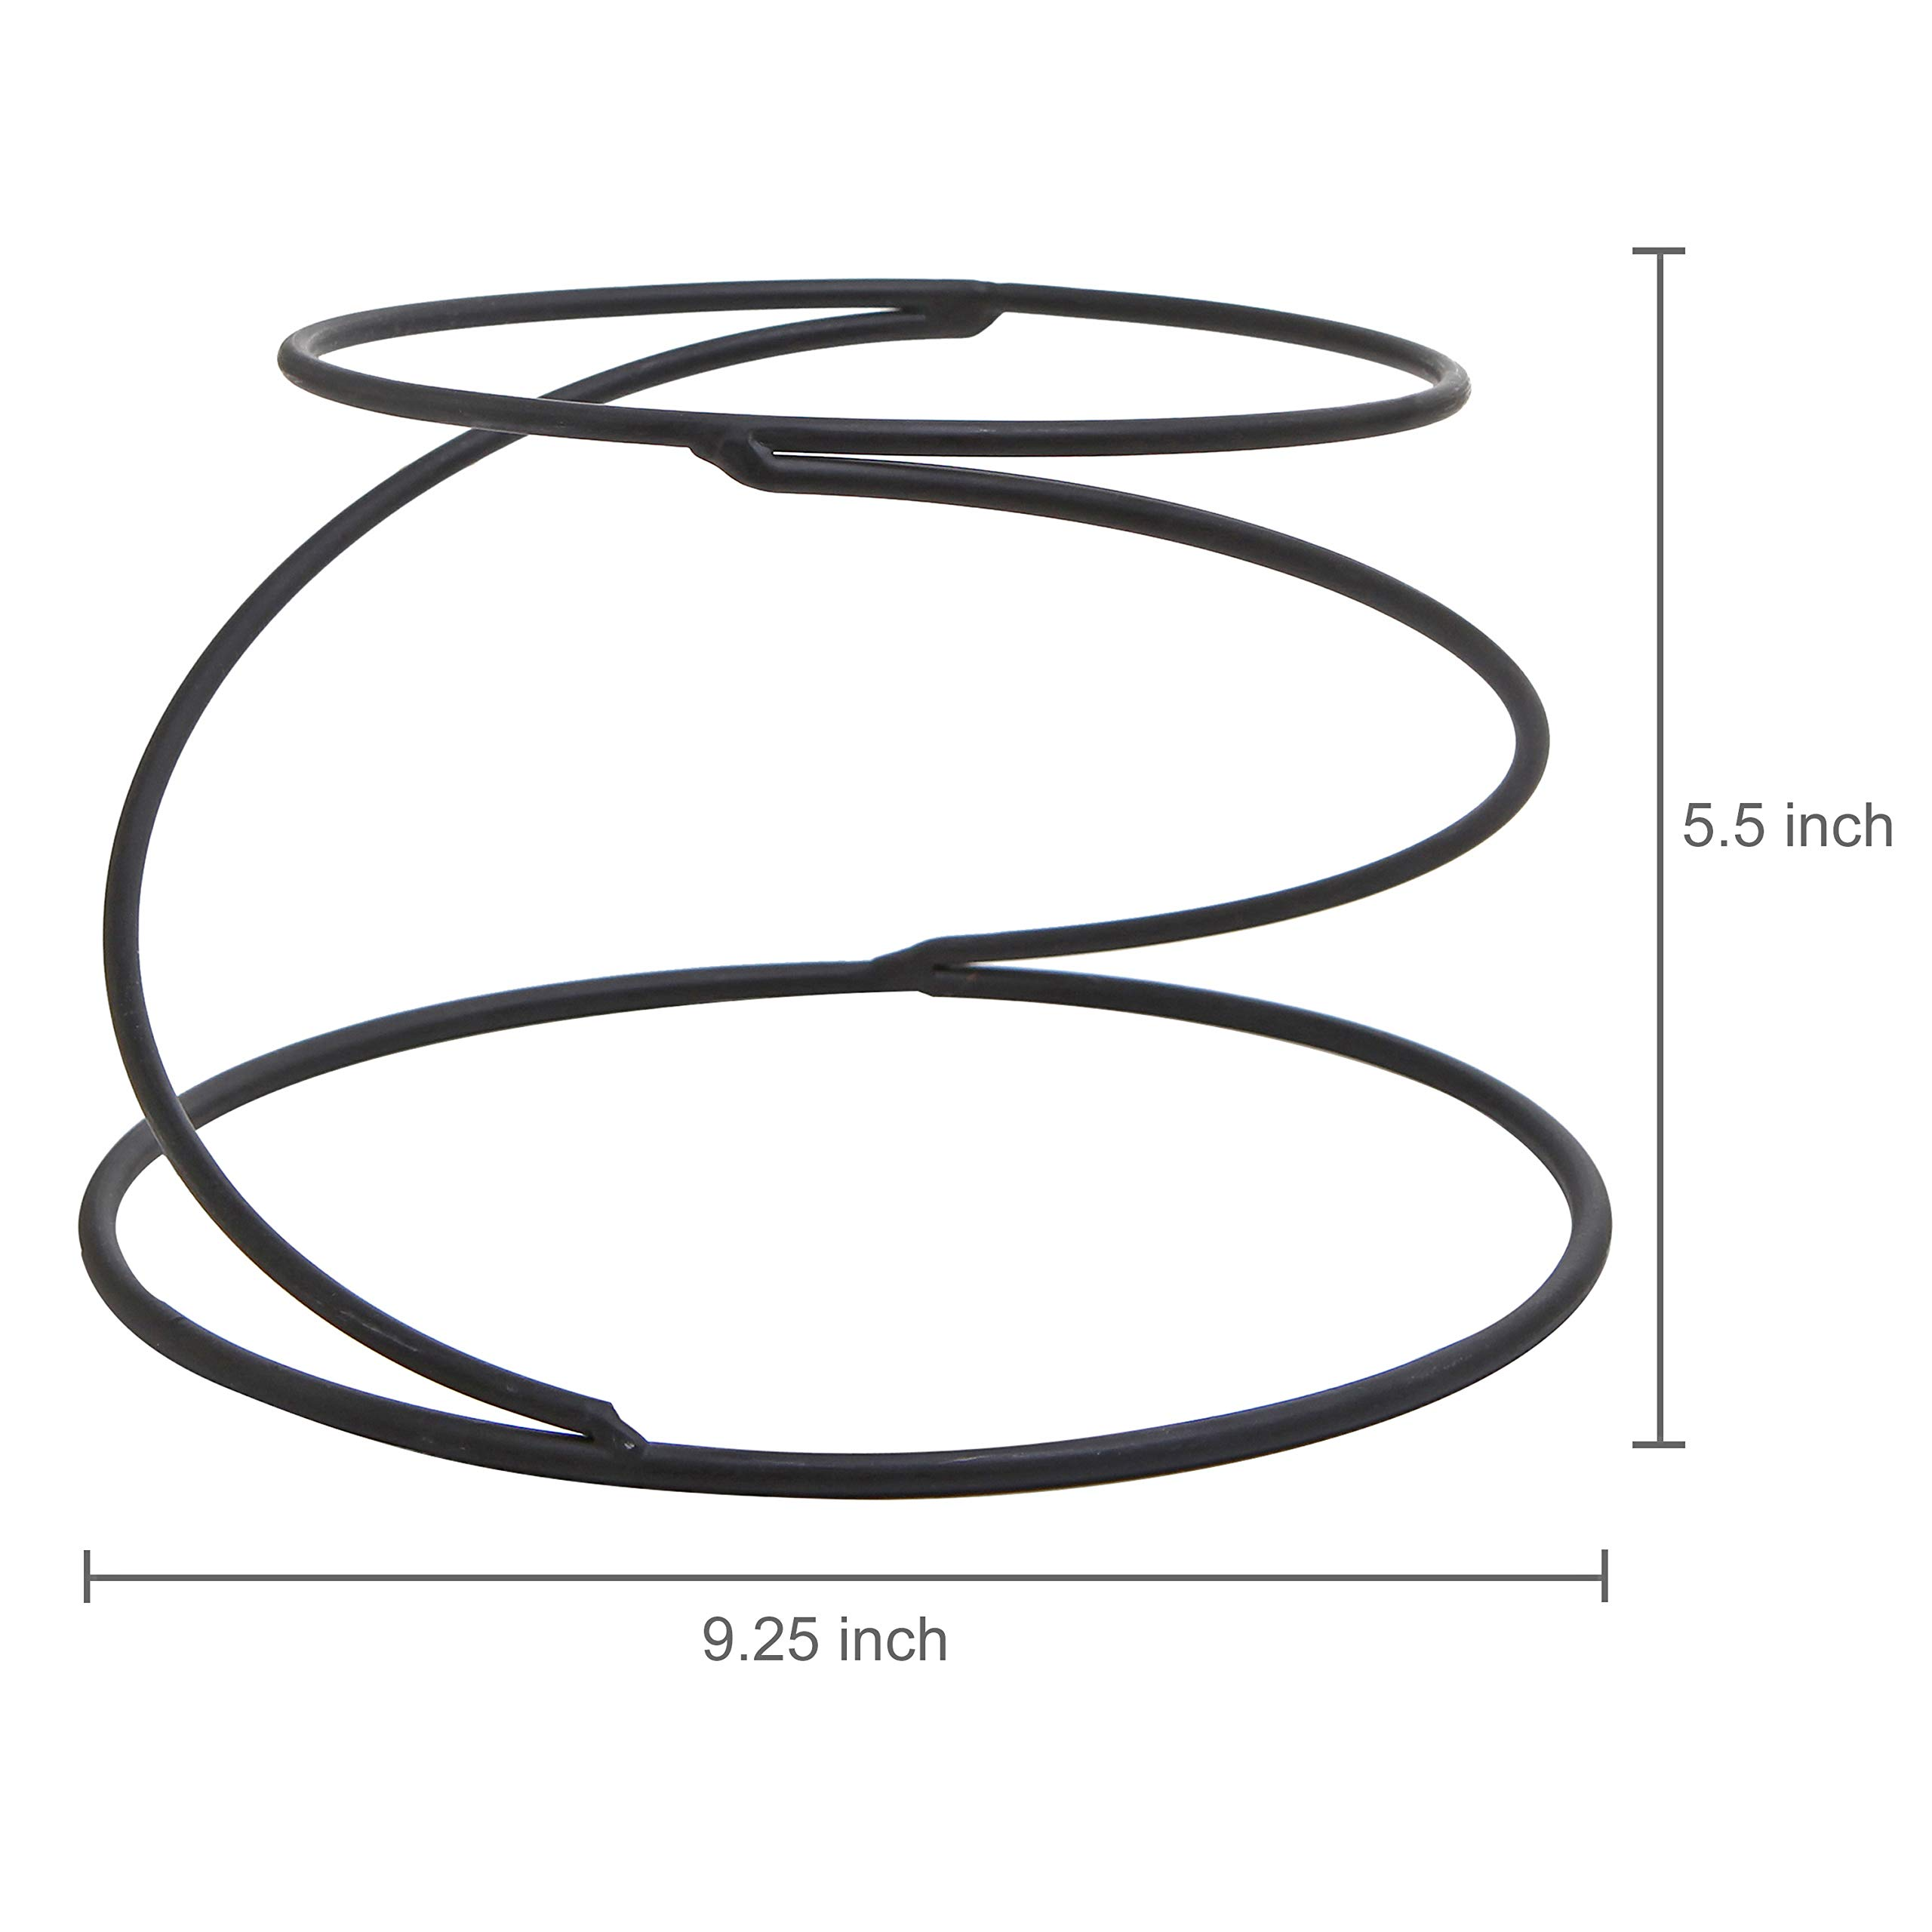 MyGift Set of 4 Metal Spiral Wire Tabletop Pizza Tray Stands, Black by MyGift (Image #6)